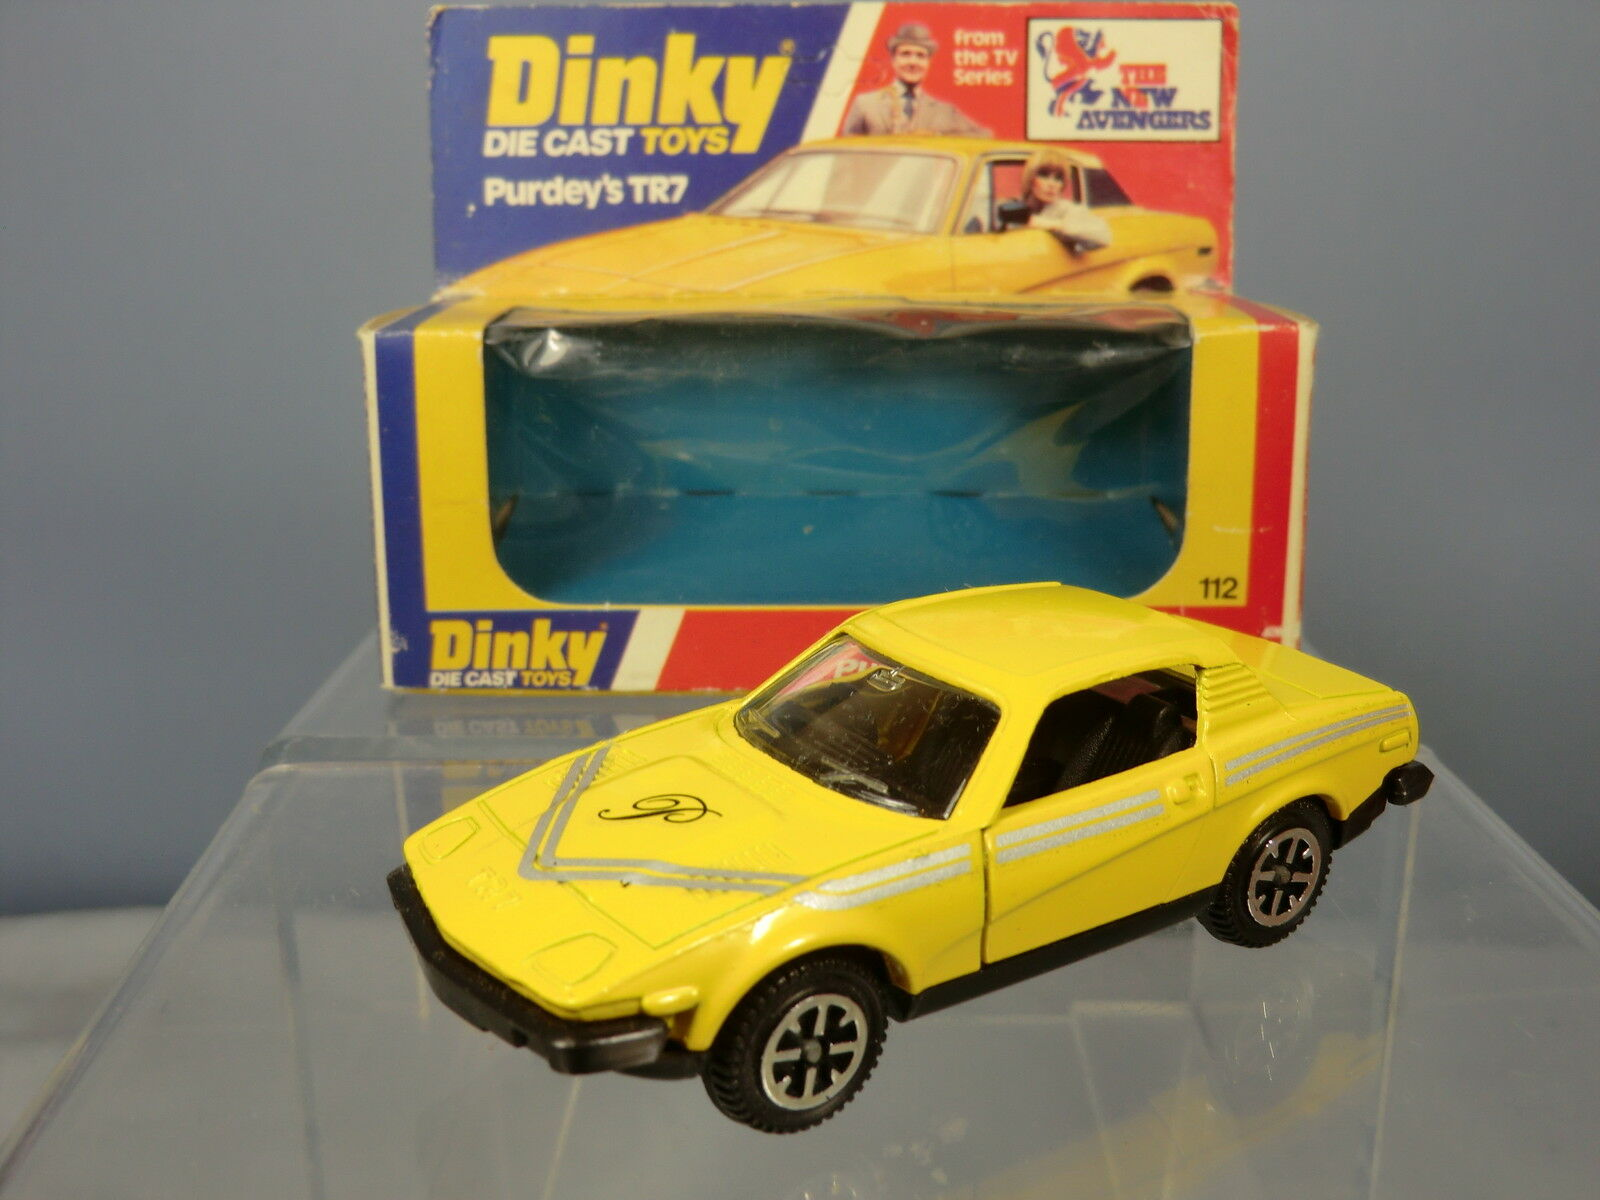 DINKY DINKY DINKY TOYS MODEL No.112  PURDEY'S TR 7  '  THE NEW AVENGERS     VN MIB e61ca5